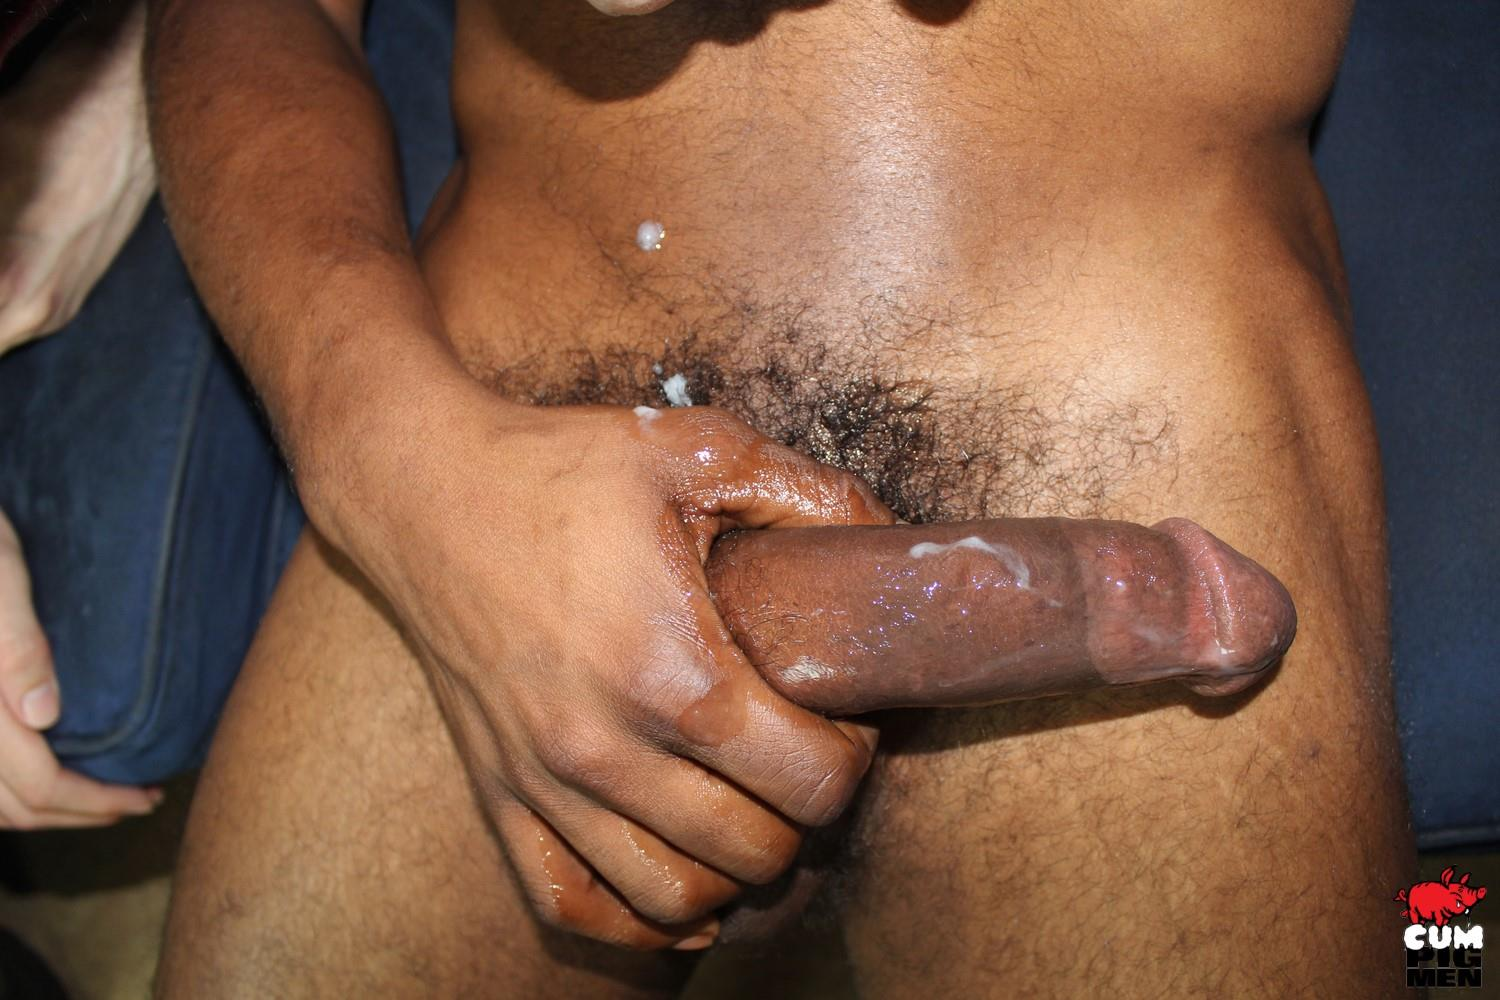 Cum-Pig-Men-Rio-Starr-Big-Black-Cock-Cum-Eating-16 Slutty White Boy Eats A Black Mans Big Load Of Cum